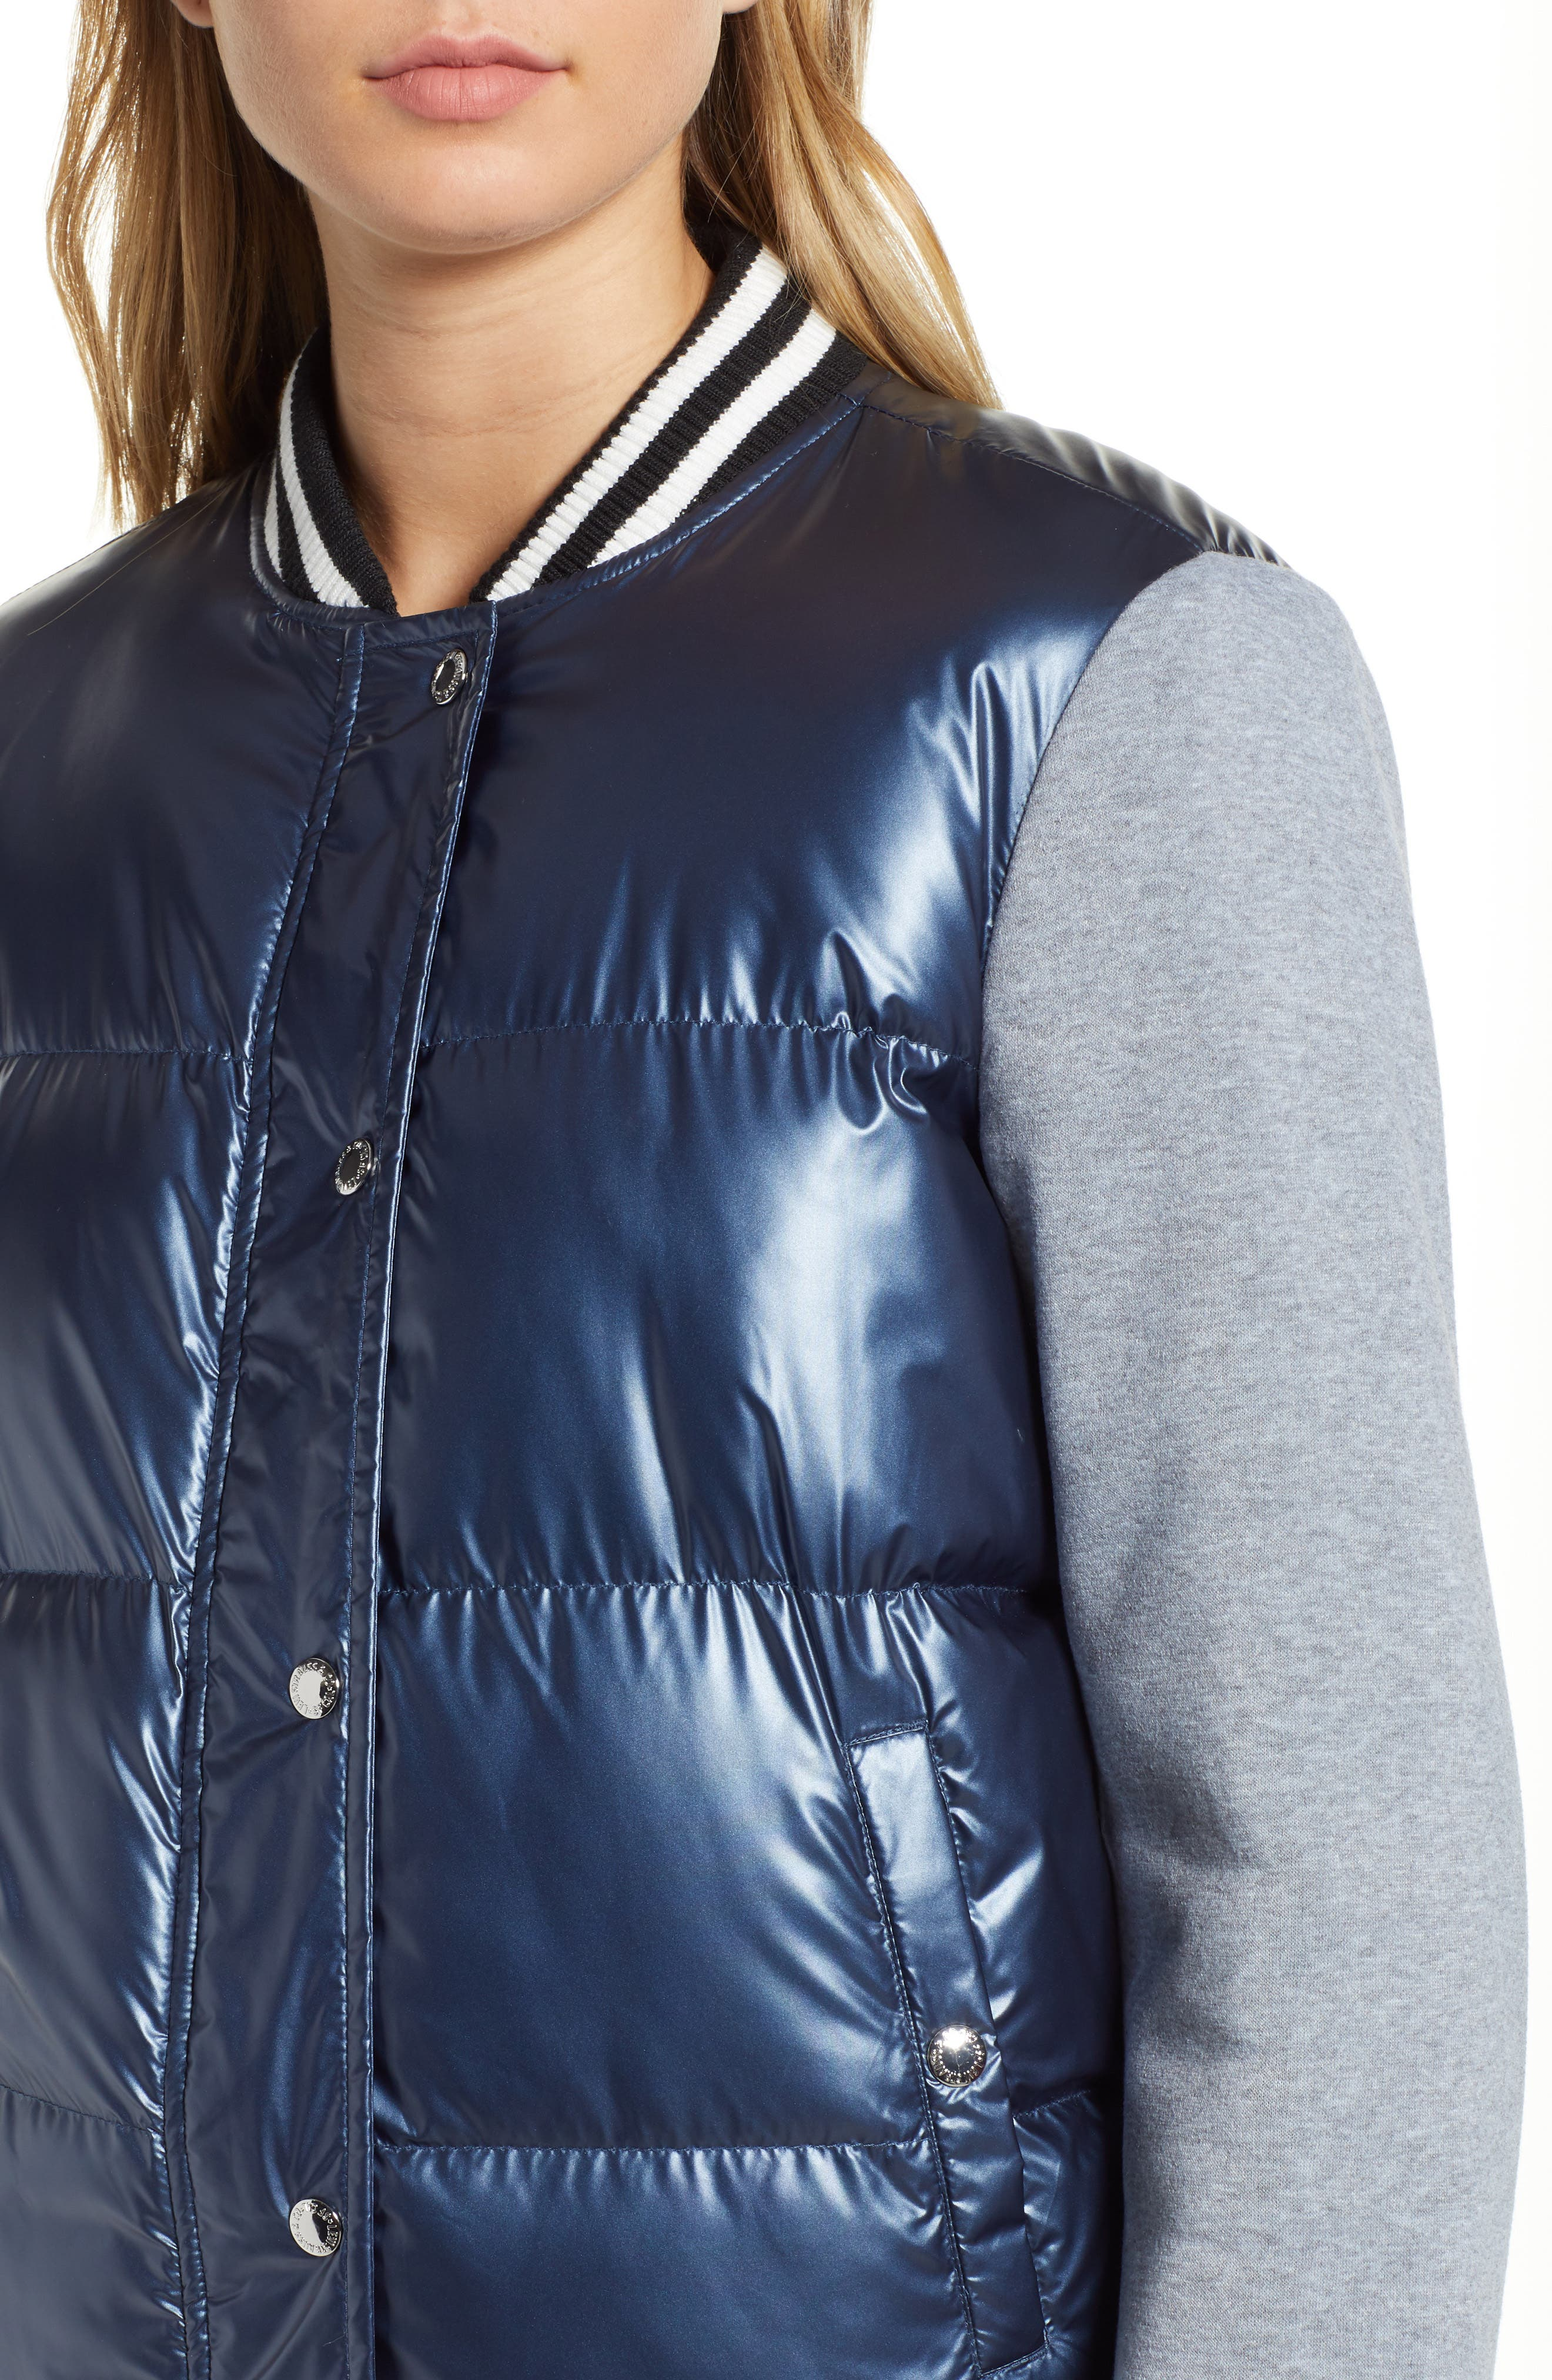 LEVIS<sup>®</sup> Mixed Media Quilted Varsity Jacket,                             Alternate thumbnail 4, color,                             NAVY/ GREY